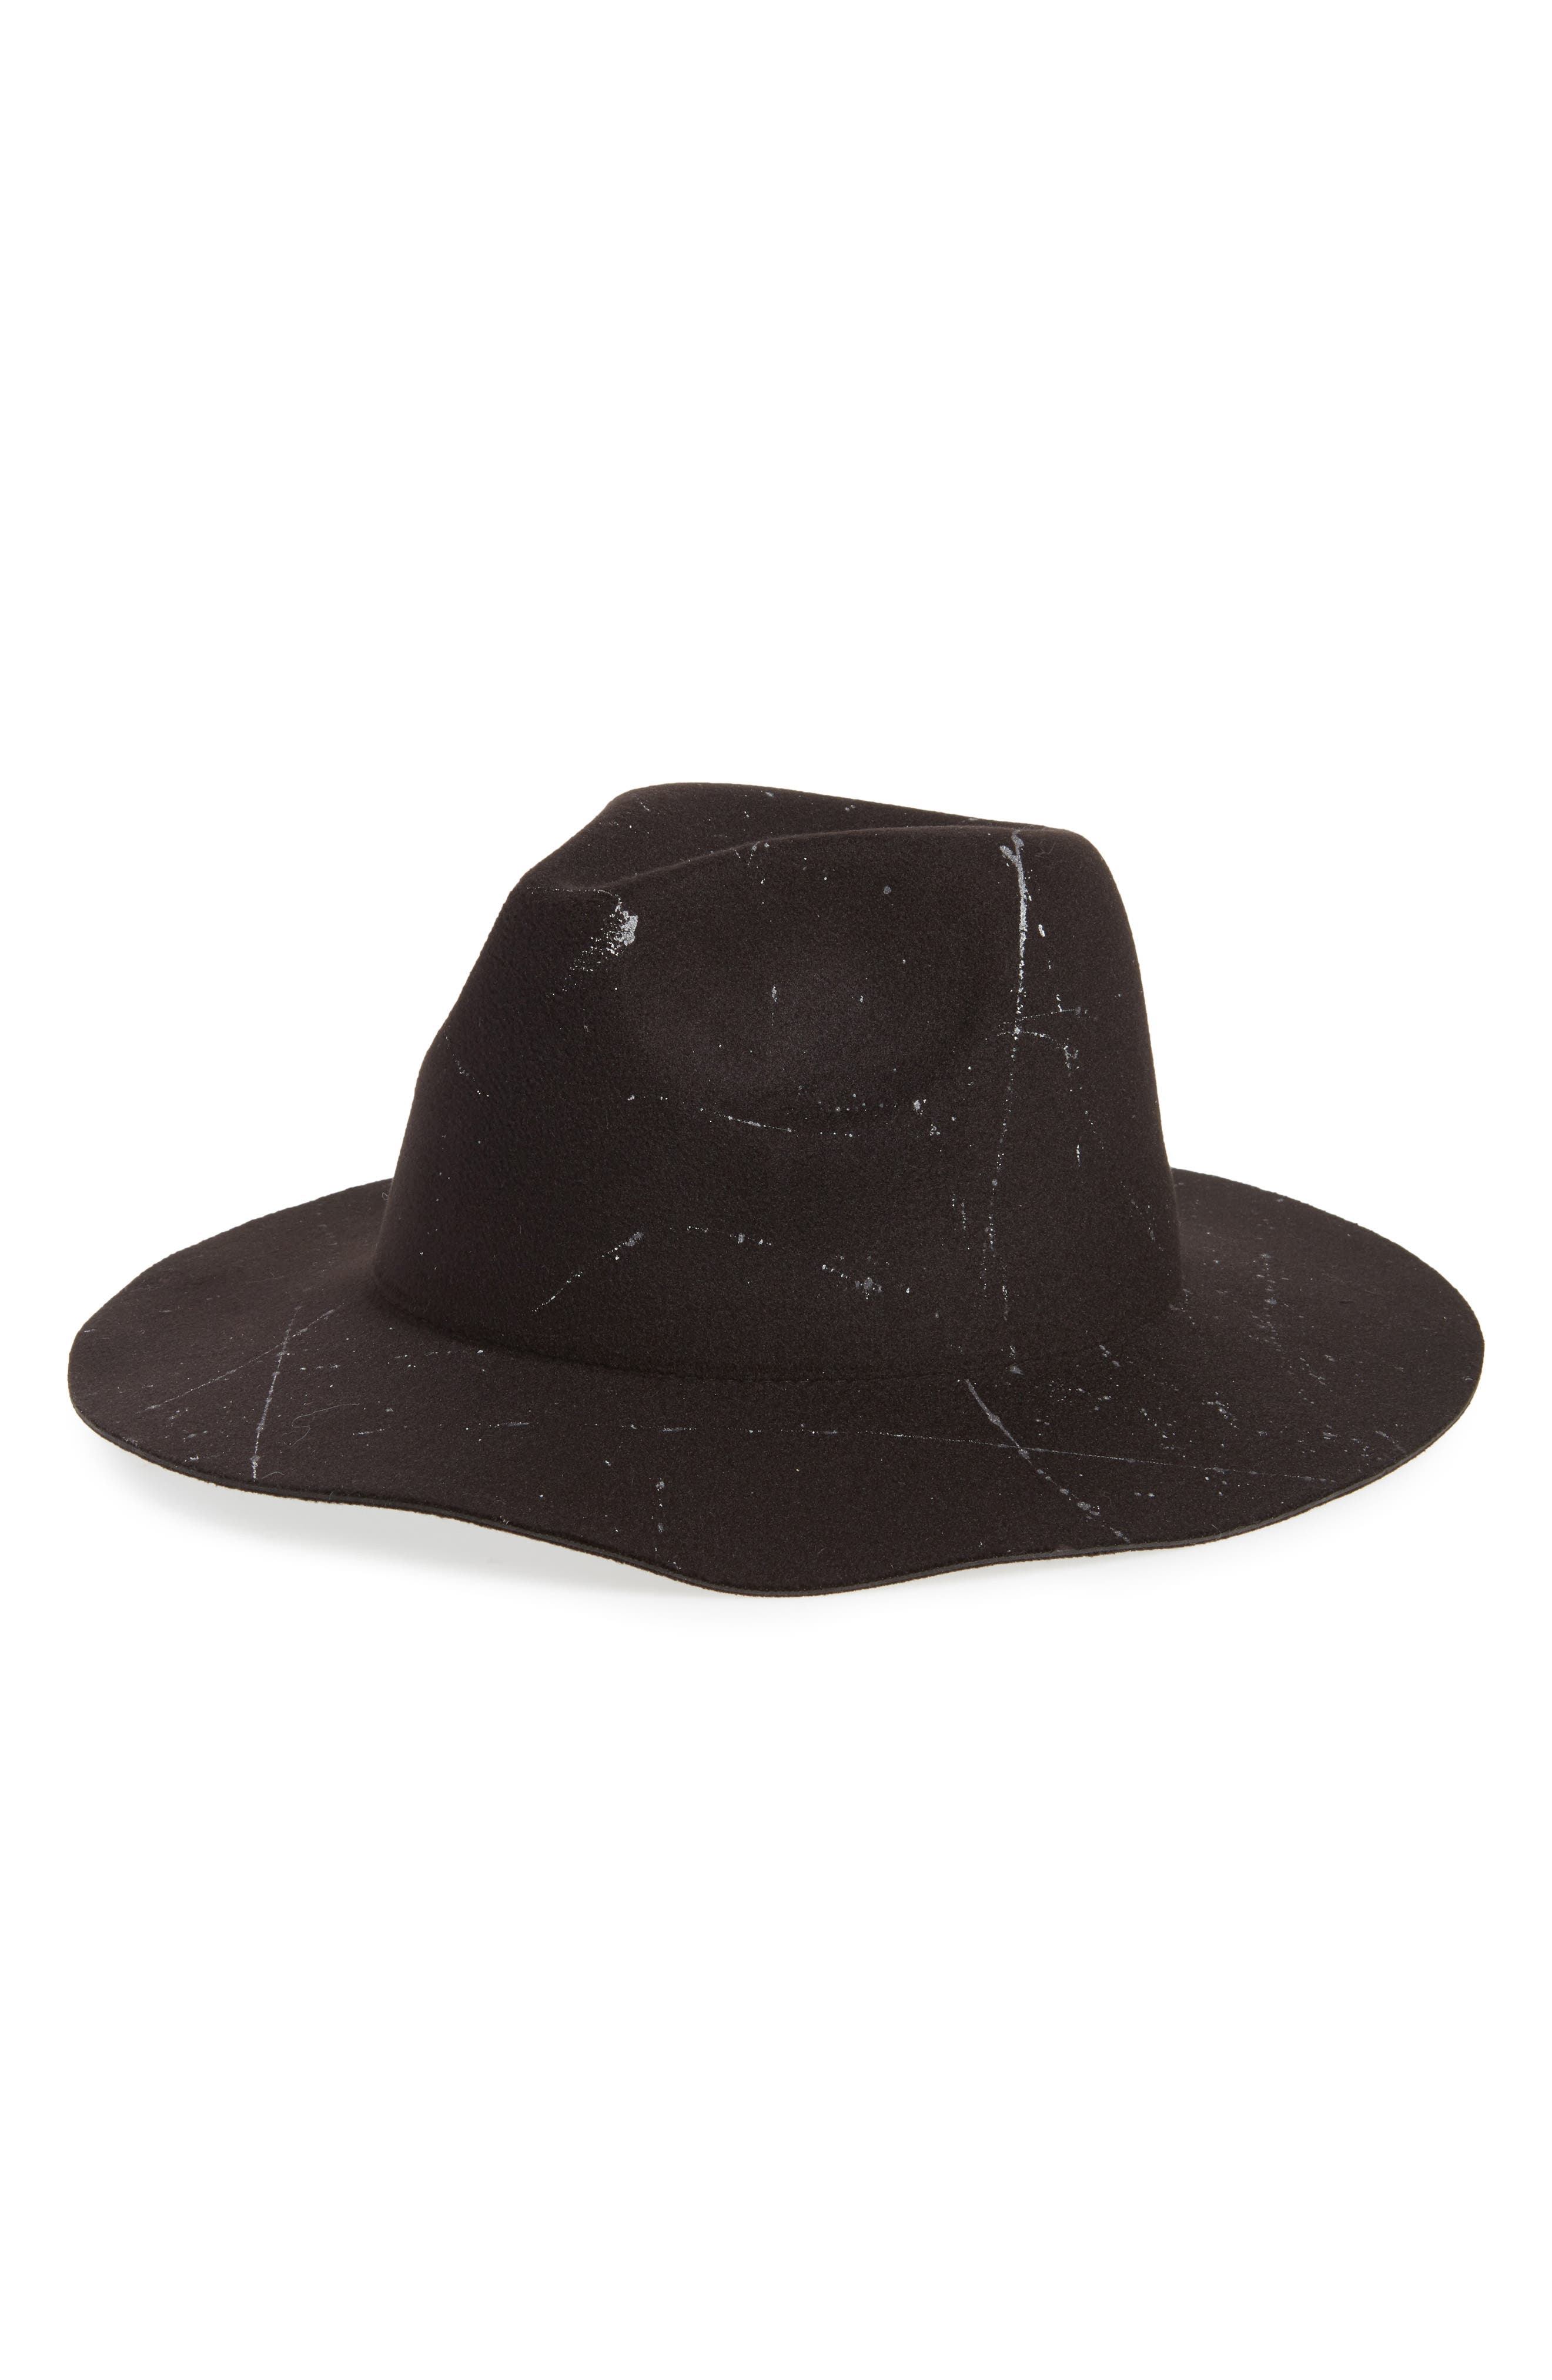 Main Image - Kitsch Marbled Paint Felt Panama Hat